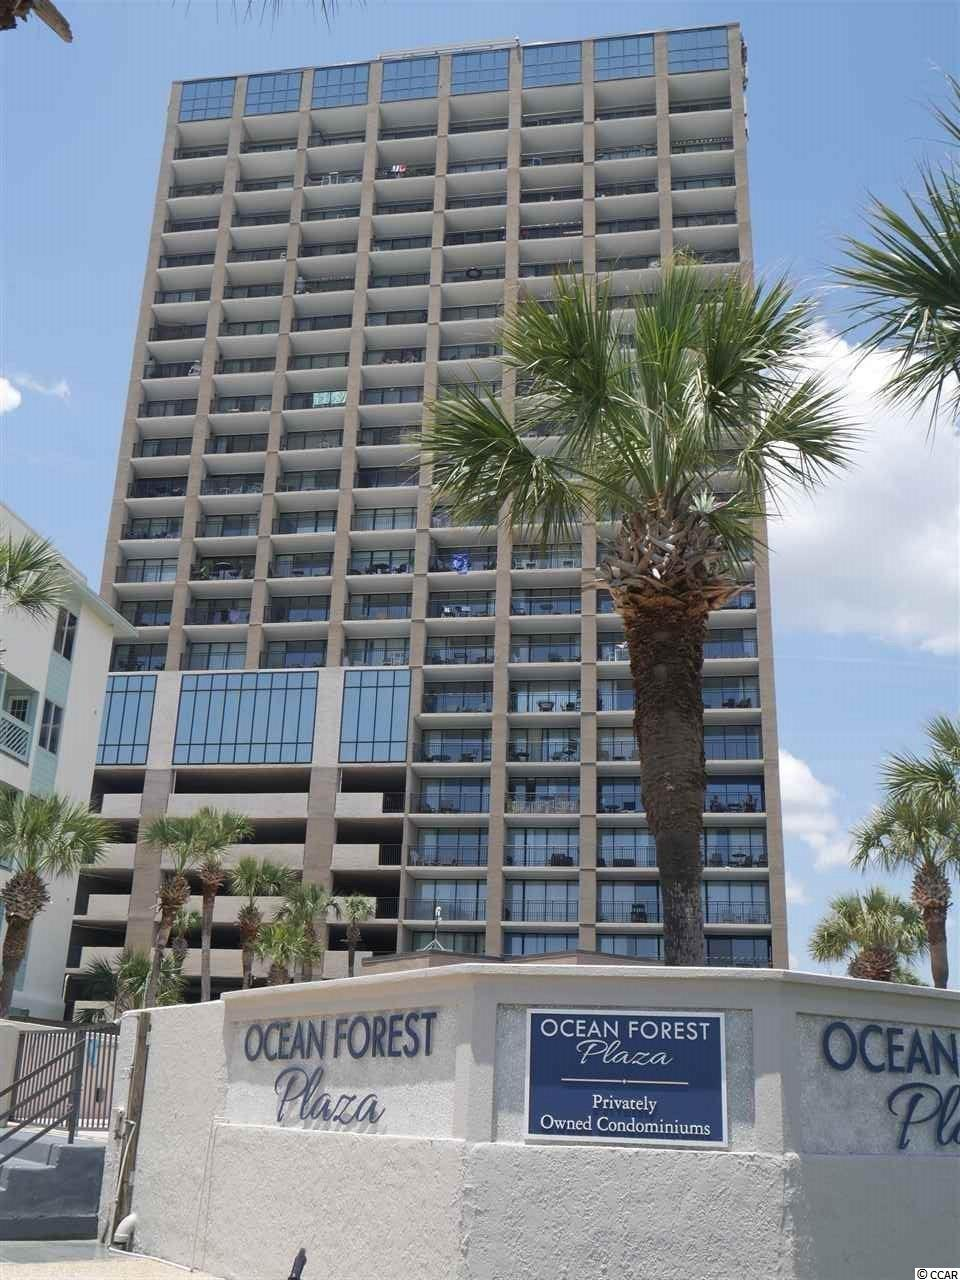 Enjoy the direct view of the Ocean & Beach from your private balcony on the 18th Floor. This upgraded, Oceanfront condo features a true 1 Bedroom floor plan  with full bath, kitchen/dining area and living room with sliders to a private balcony. Upgrades include:  Renovated Kitchen with full size appliances, Full size washer and dryer set in hallway closet, Bathroom with updated vanity and linen closet. This condo is ready to move in. Located in one of Myrtle Beach's most prestigious destinations - This building features wireless Internet access, owner's fitness, owner's laundry, owner's lounge, heated indoor pool, hot tub and outdoor pool. Pet friendly for owners. Interior electric included in home owners assoc fees. Walk across the street to the oceanfront walking trail and playground. Close to Shopping, Restaurants and attractions. Great as a 2nd home or investment property. Square footage is approximate and not guaranteed. Buyer is responsible for verification